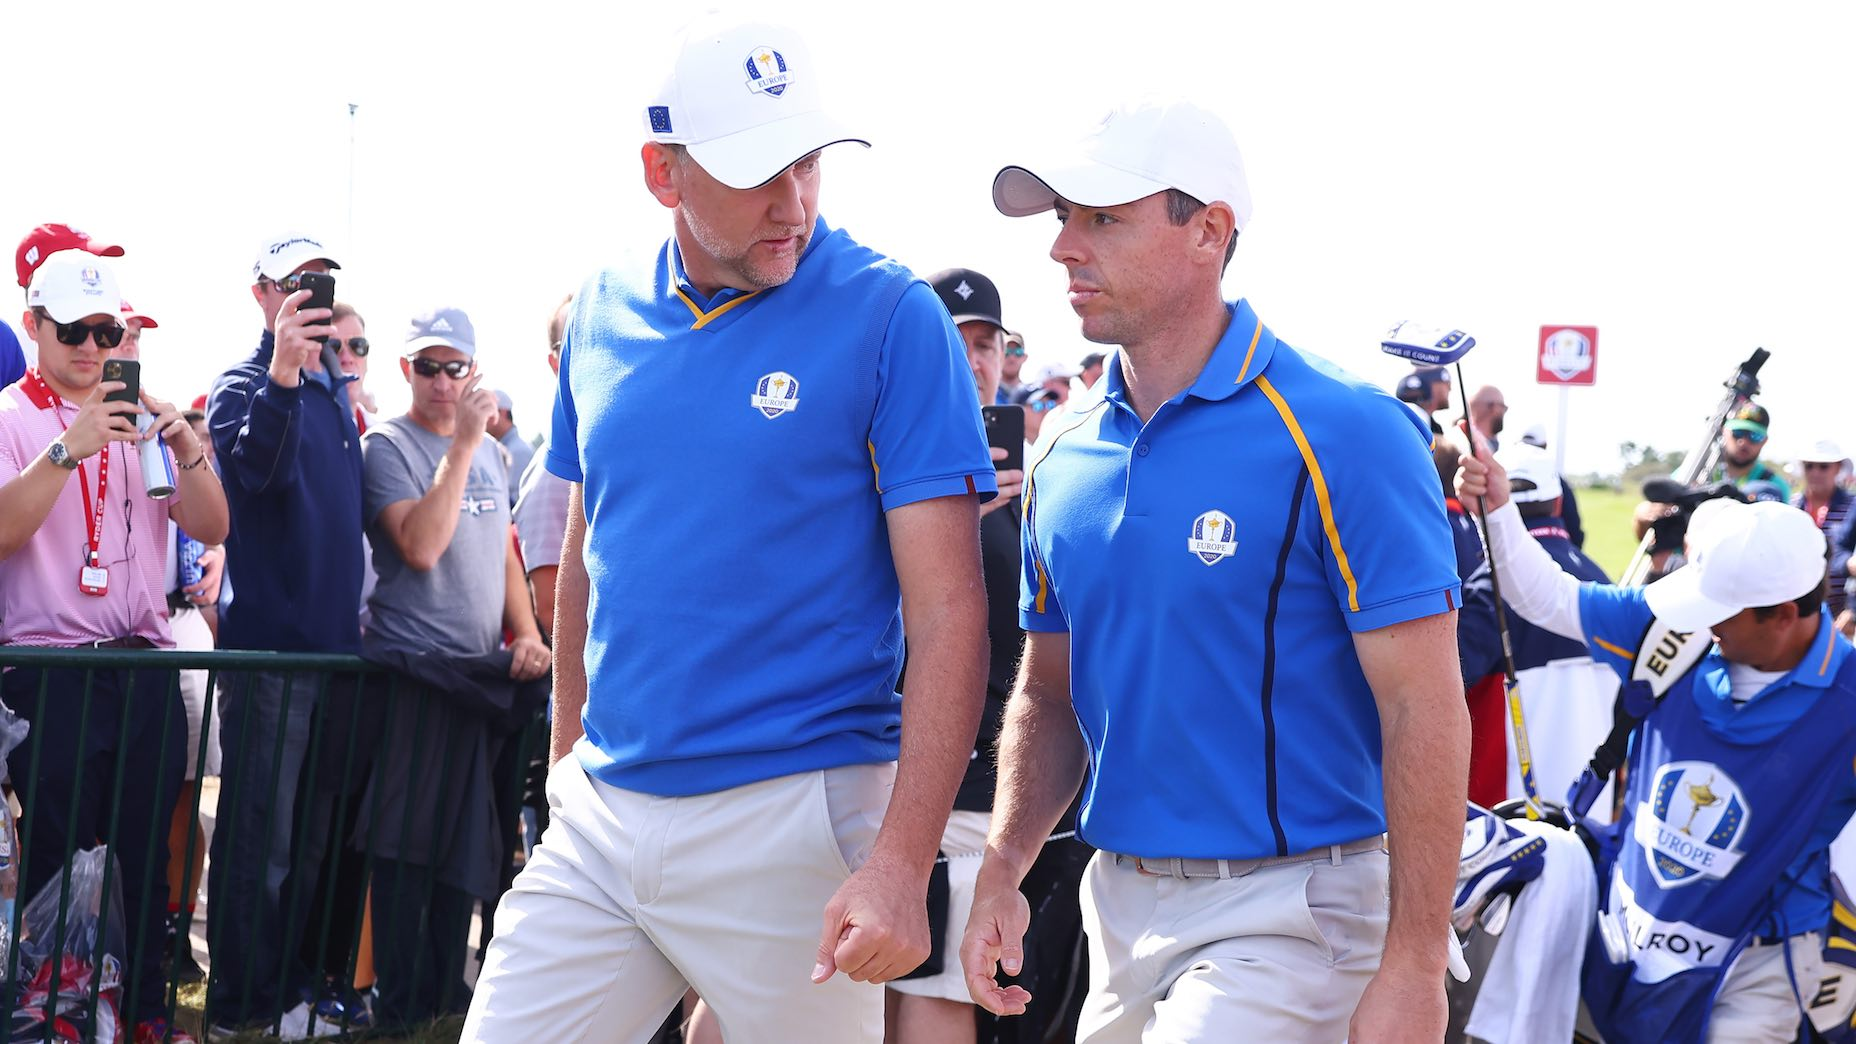 KOHLER, WISCONSIN - SEPTEMBER 24: Ian Poulter of England and team Europe (L) and Rory McIlroy of Northern Ireland and team Europe walk across the course during Friday Morning Foursome Matches of the 43rd Ryder Cup at Whistling Straits on September 24, 2021 in Kohler, Wisconsin. (Photo by Warren Little/Getty Images)